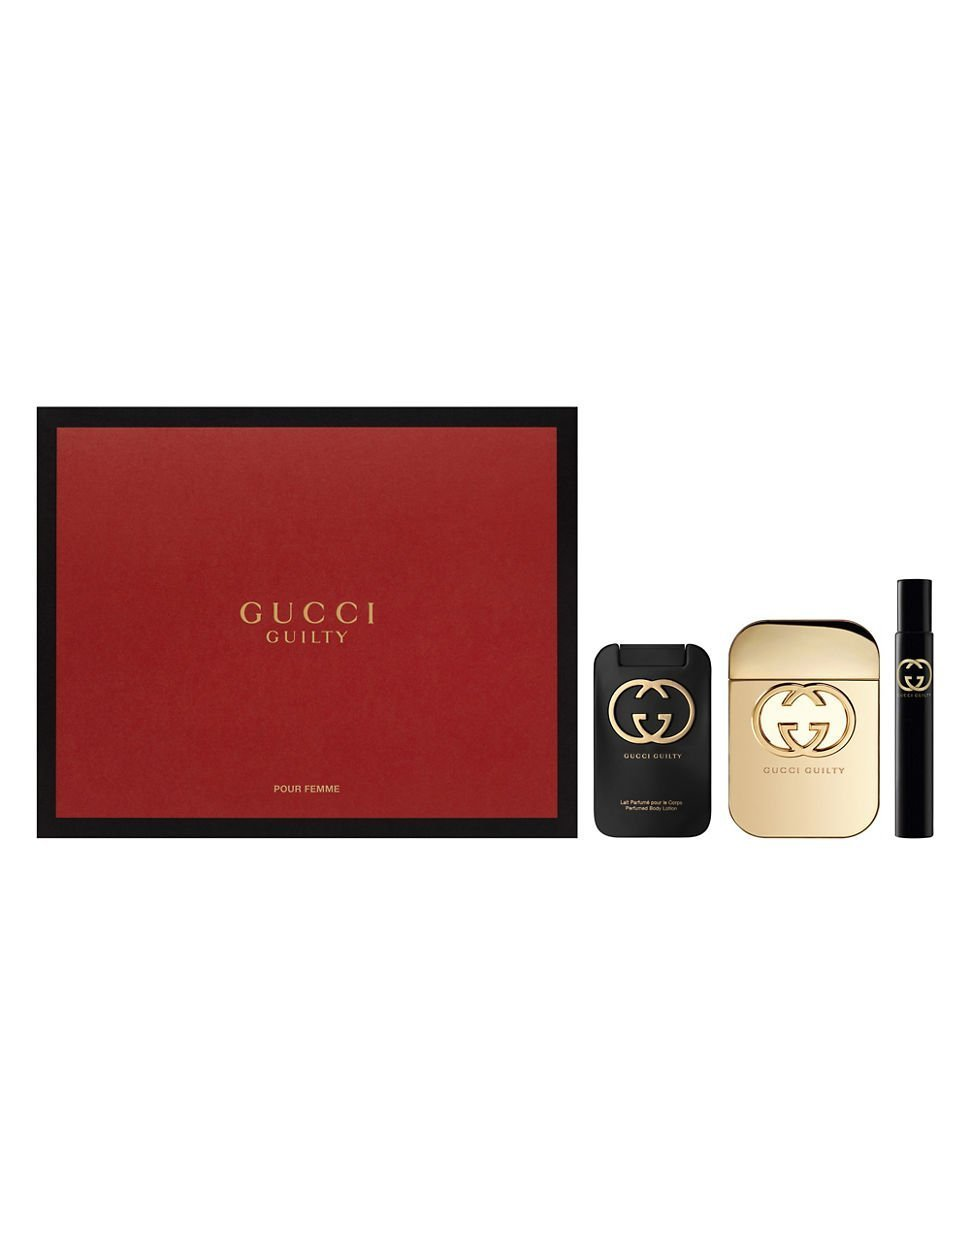 6b7164a2e Gucci Guilty Pour Femme Gift Set, 3-Piece: Amazon.co.uk: Beauty